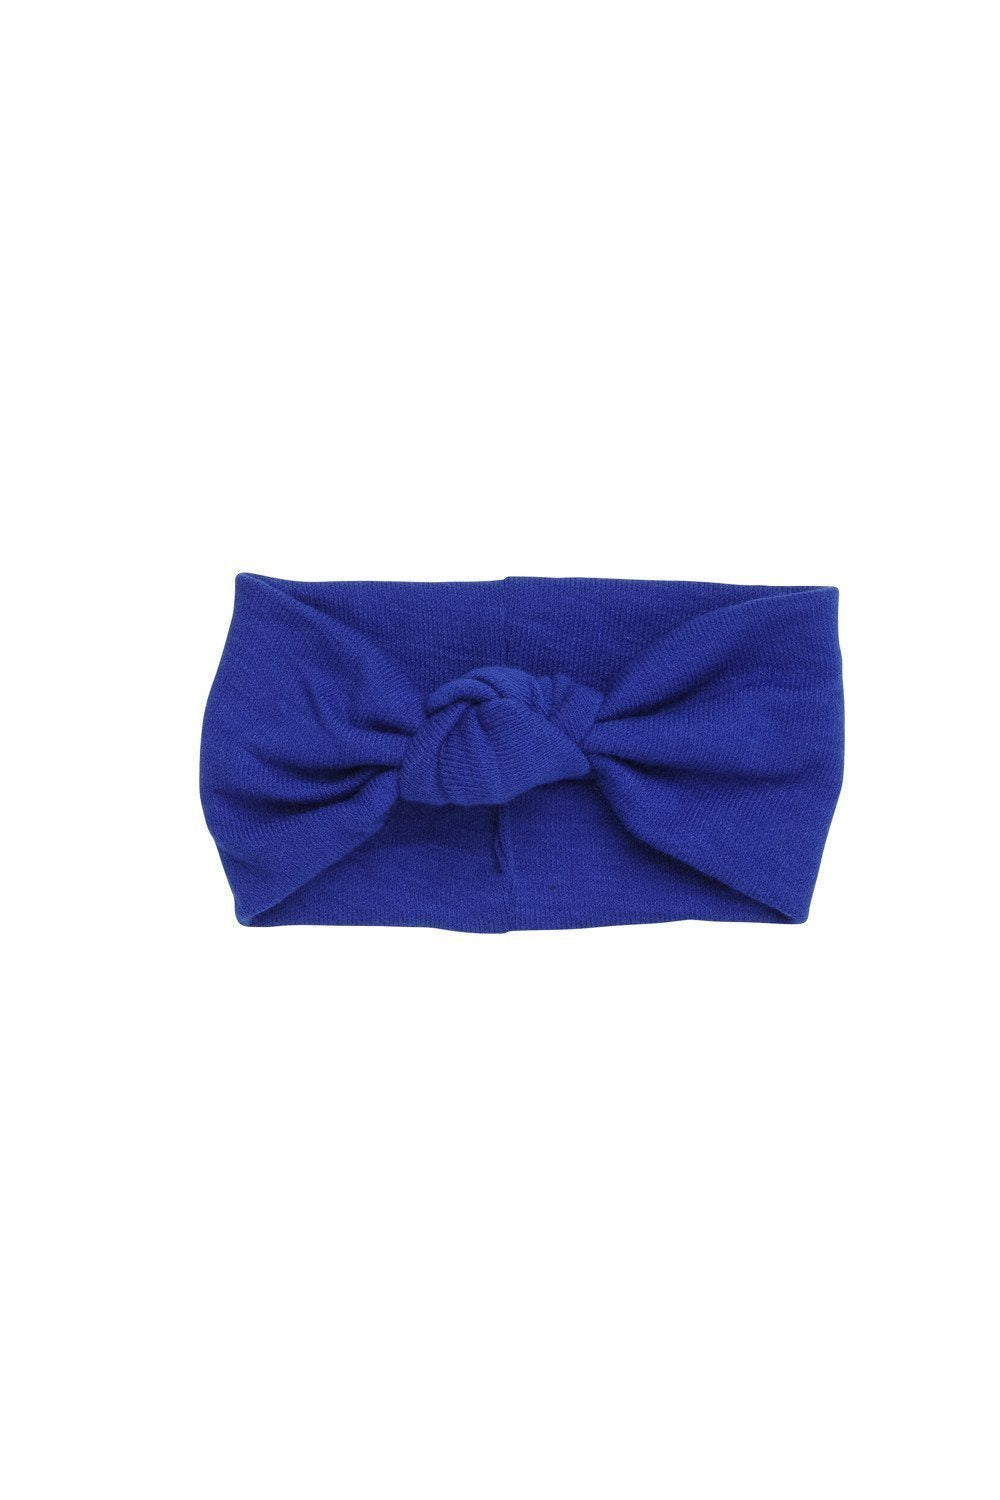 Knot Wrap - Cobalt Wool - PROJECT 6, modest fashion